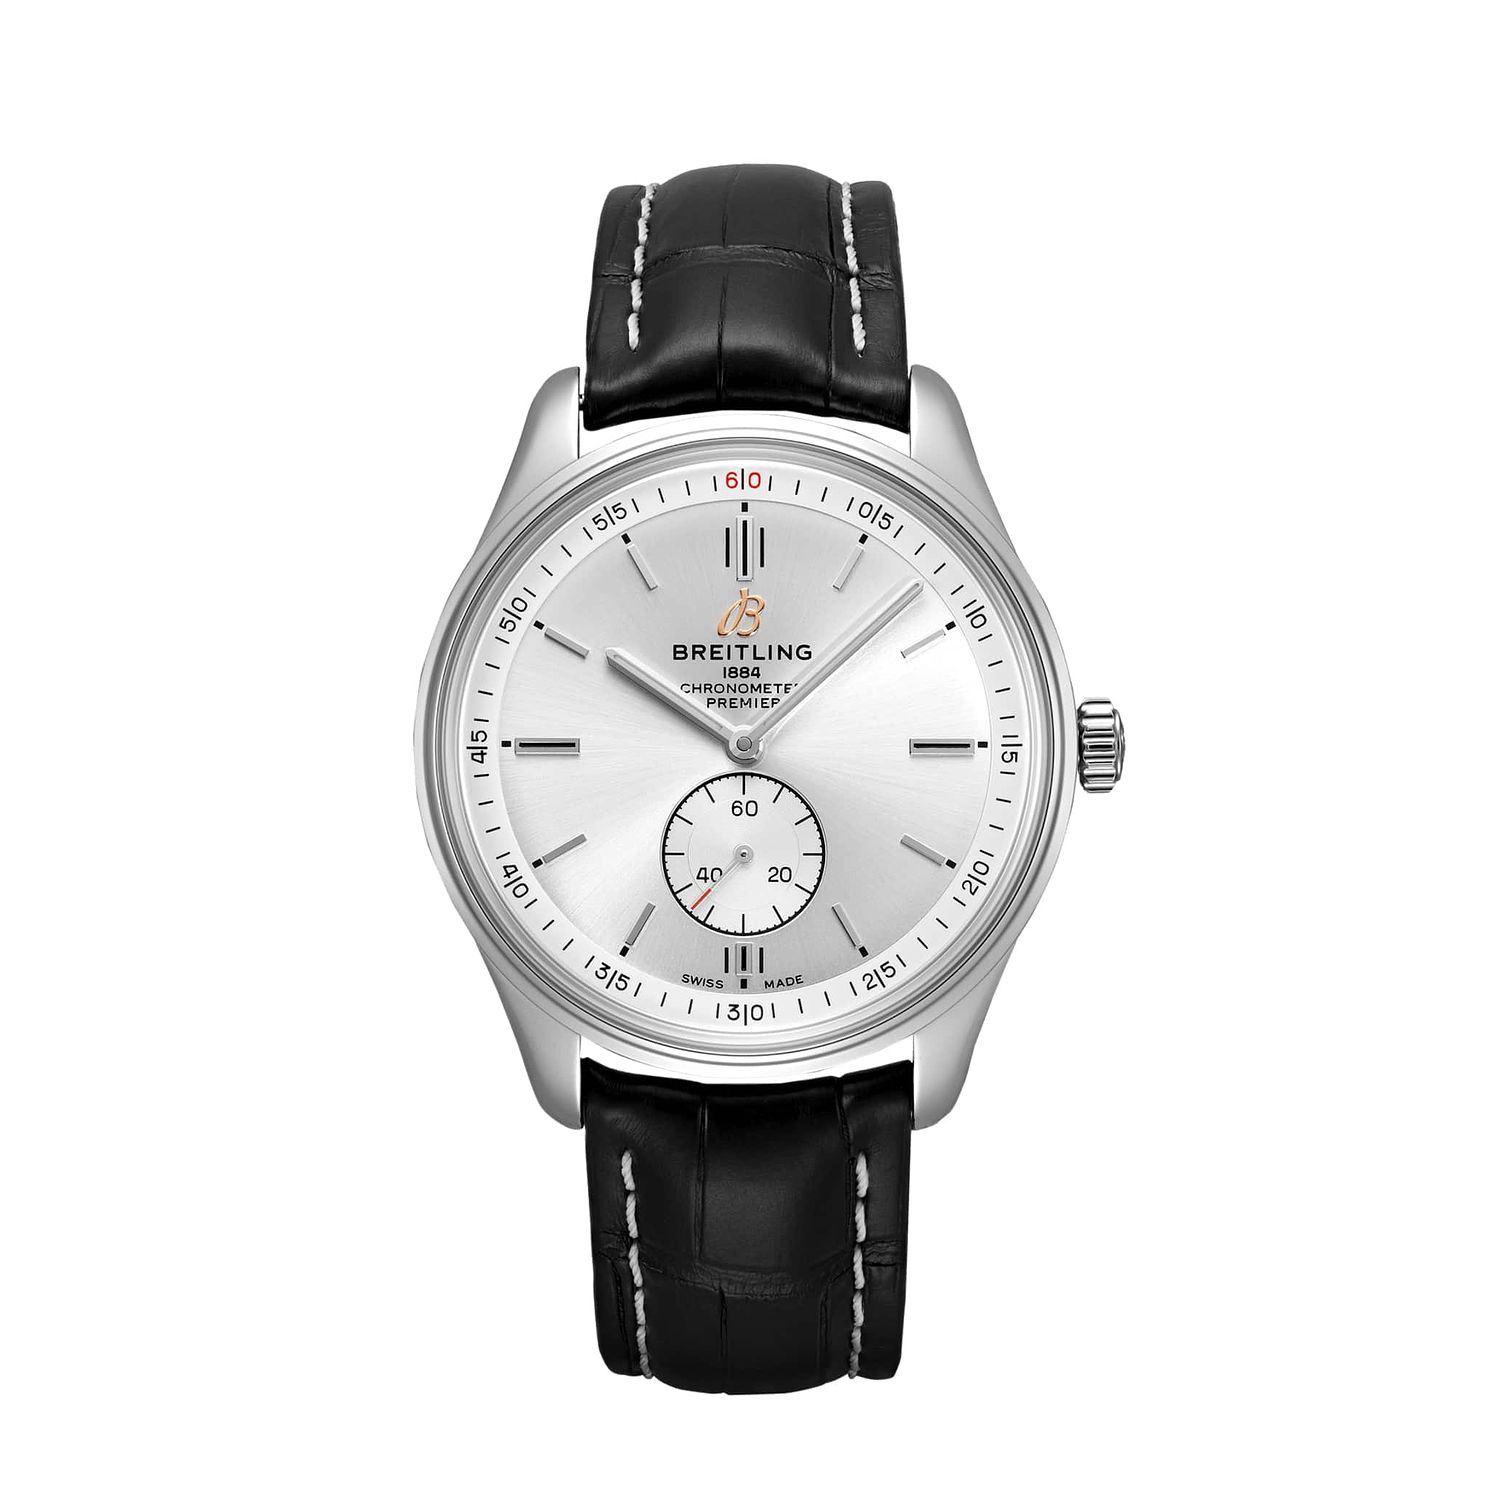 Breitling Premier Automatic Black Leather Strap Watch - Product number 2923688